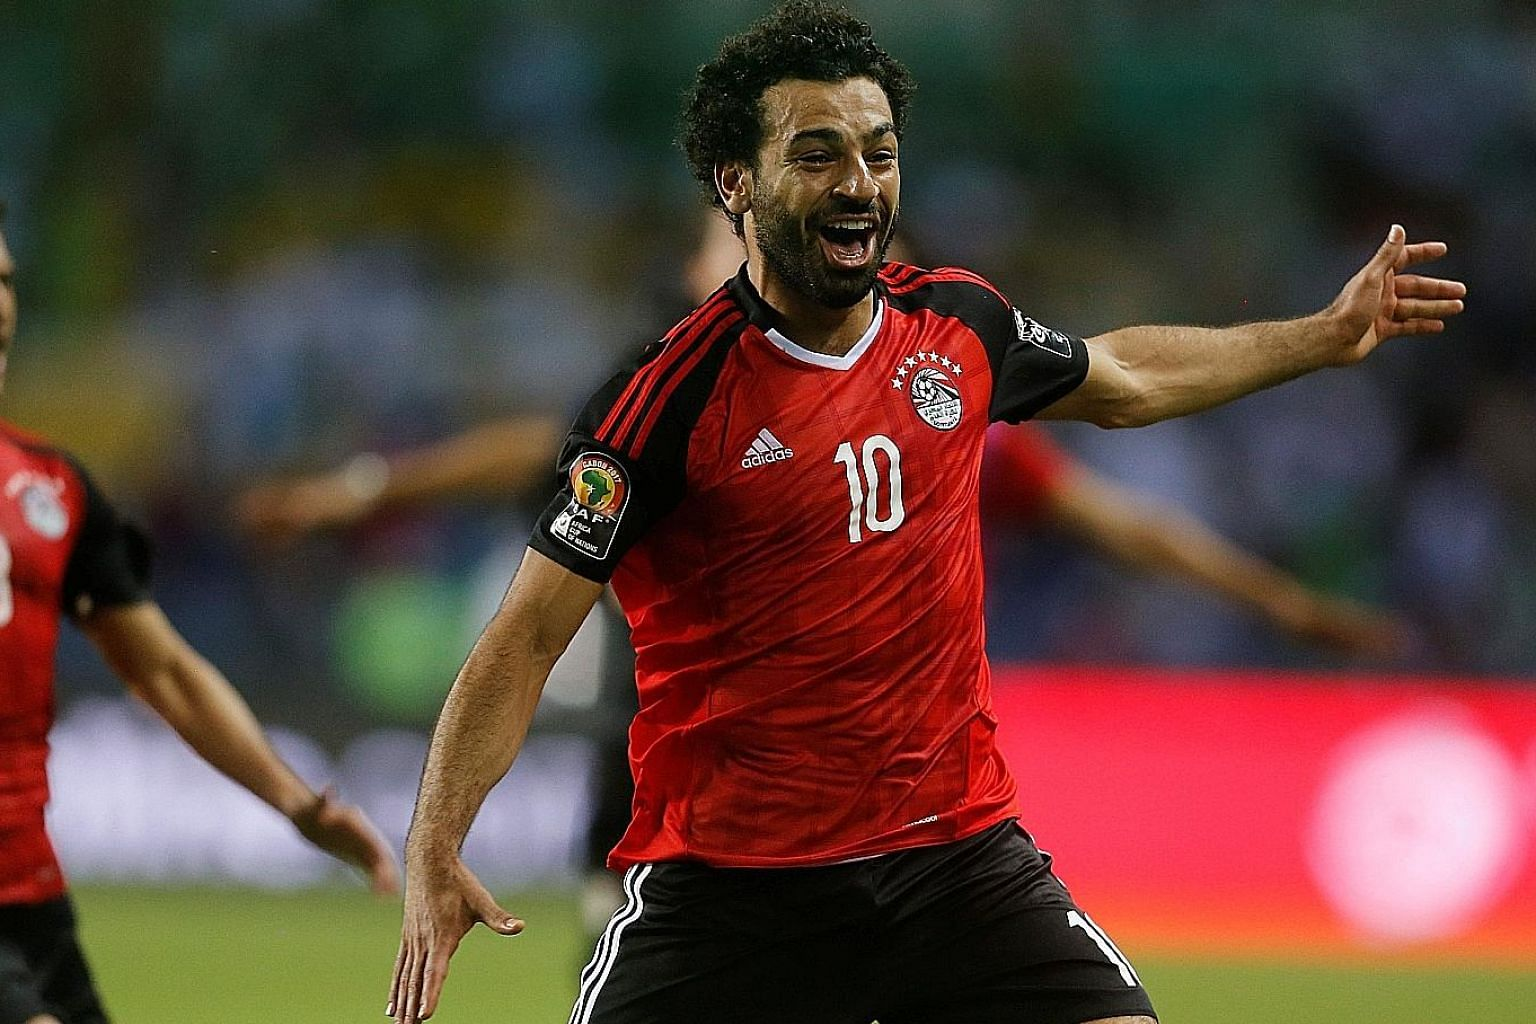 Mohamed Salah's signing could potentially kick-start a Reds spending spree, as Klopp plans to add a holding midfielder and a central defender.